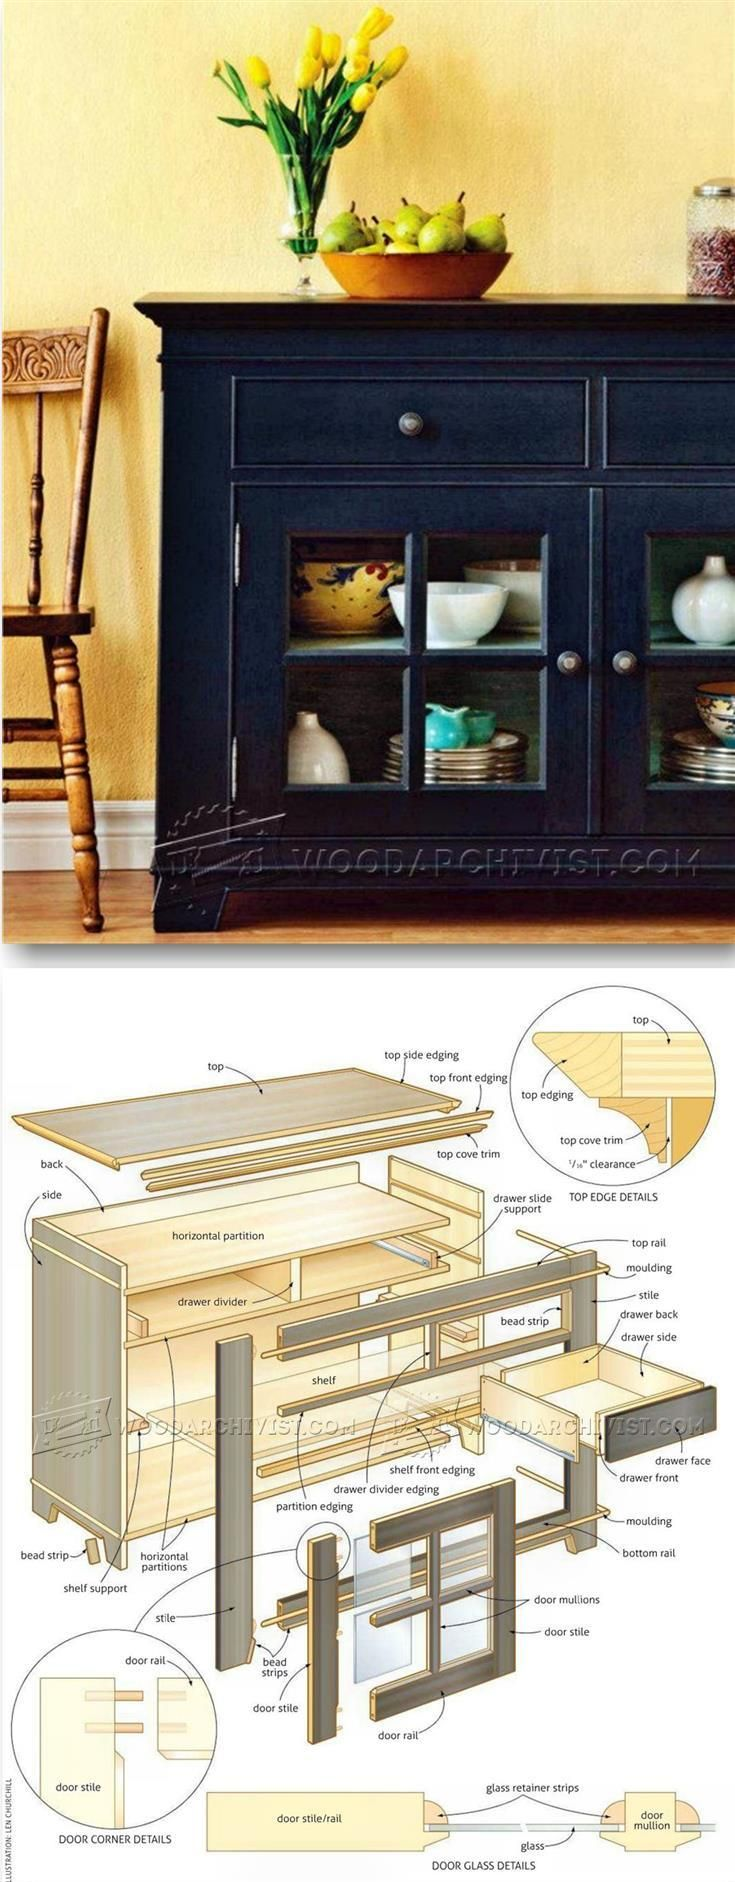 Glazed Sideboard Plans - Furniture Plans and Projects | WoodArchivist.com